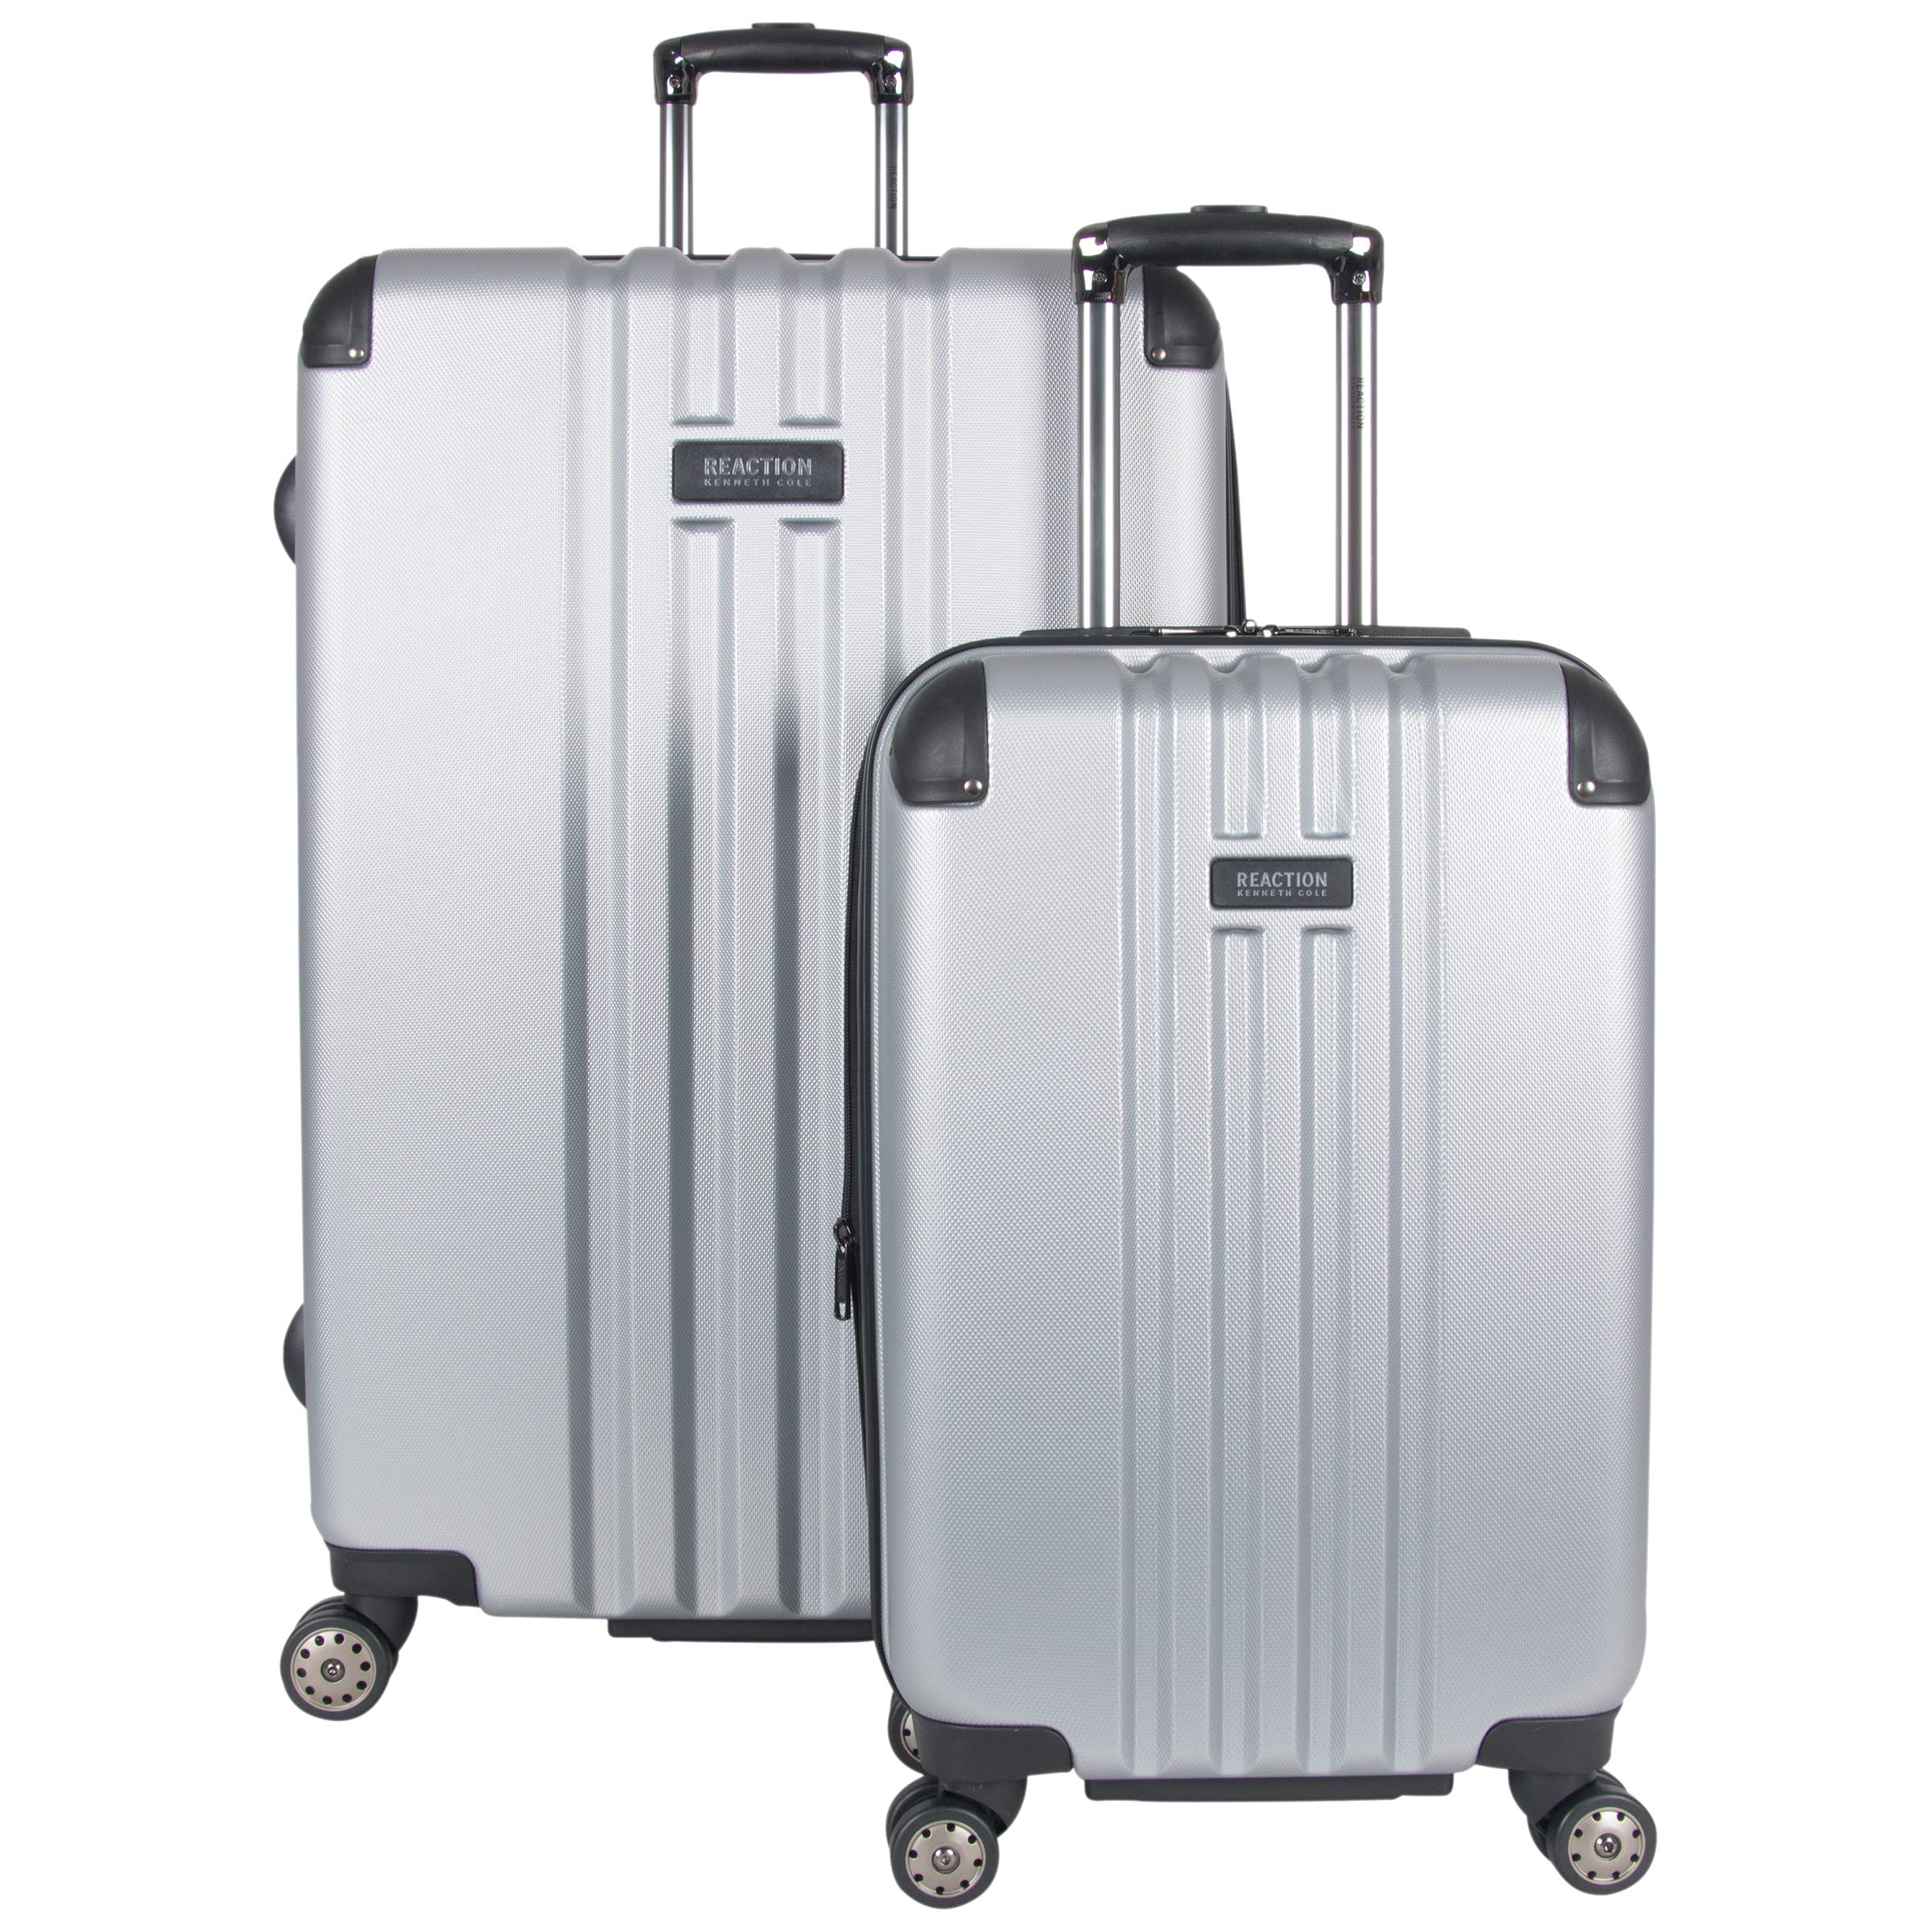 Kenneth Cole Reaction Reverb Hardside Expandable 8-Wheel Spinner 2-Piece Luggage Set; 20'' Carry-on, 29'', Light Silver